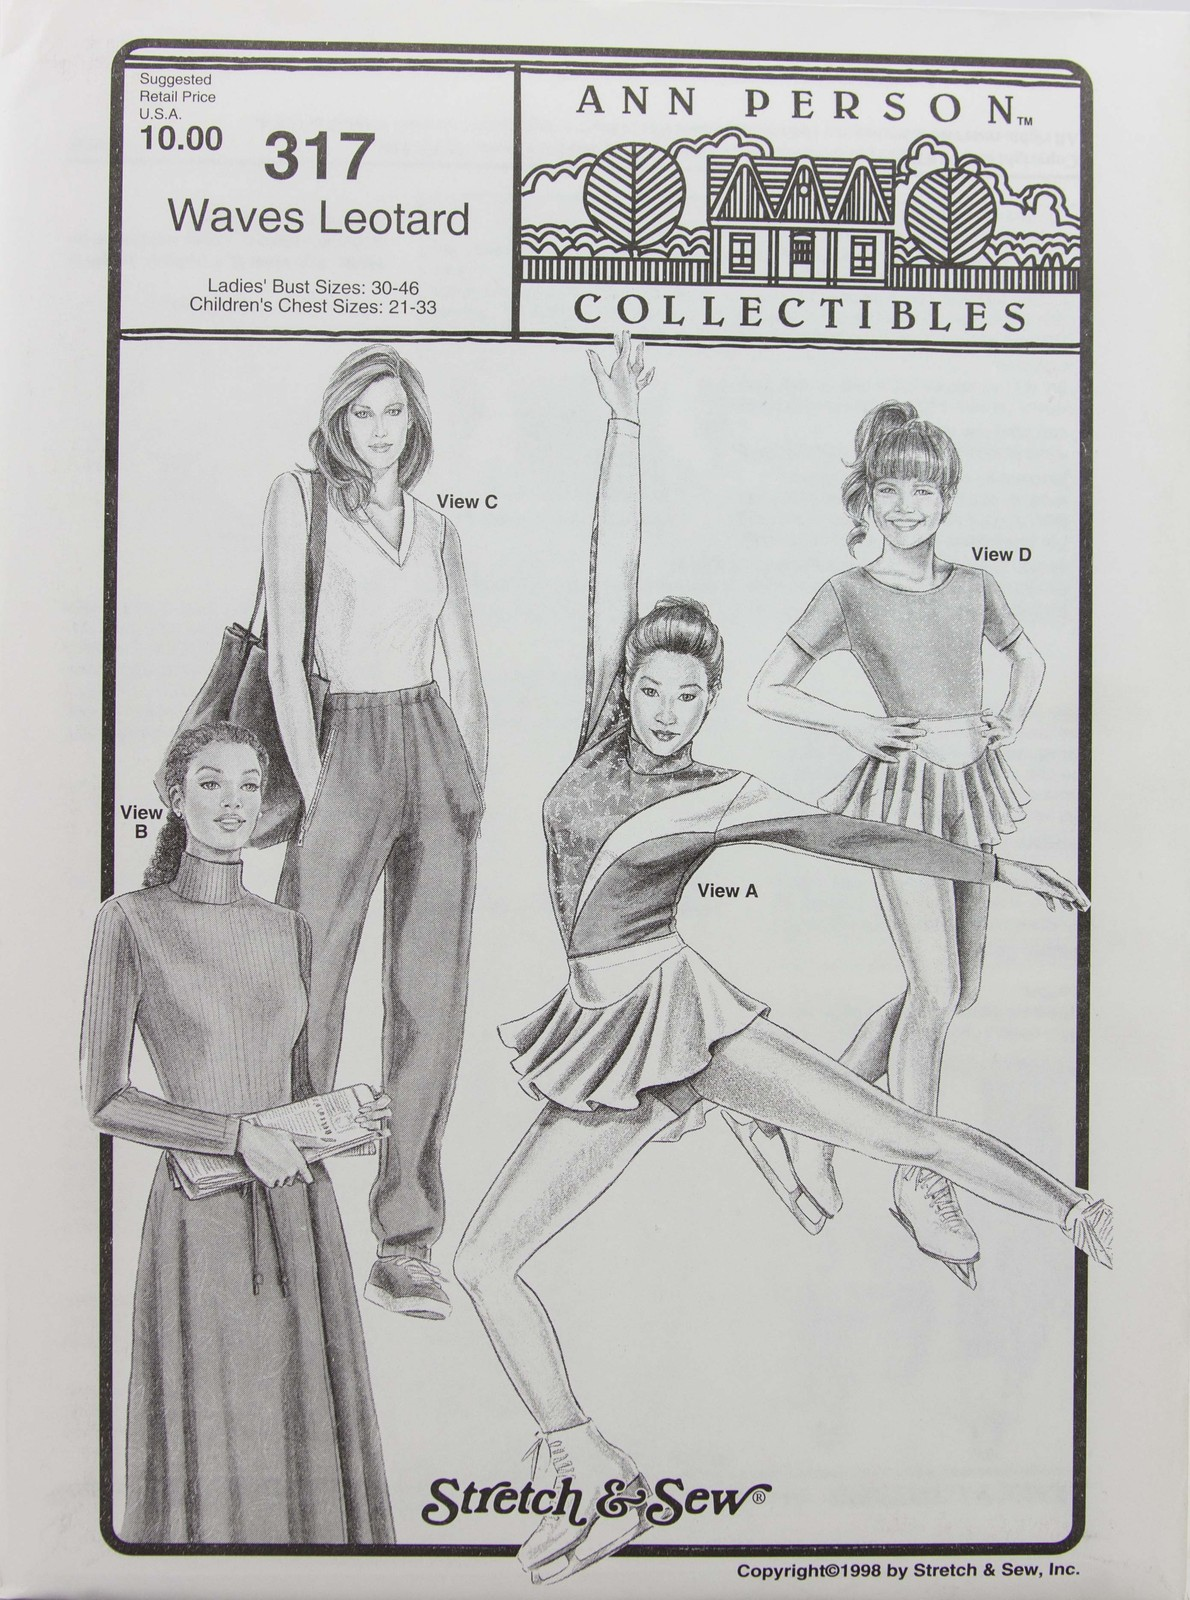 Stretch & Sew Sewing Pattern- Ann Person Collectibles #317 - Waves Leotard